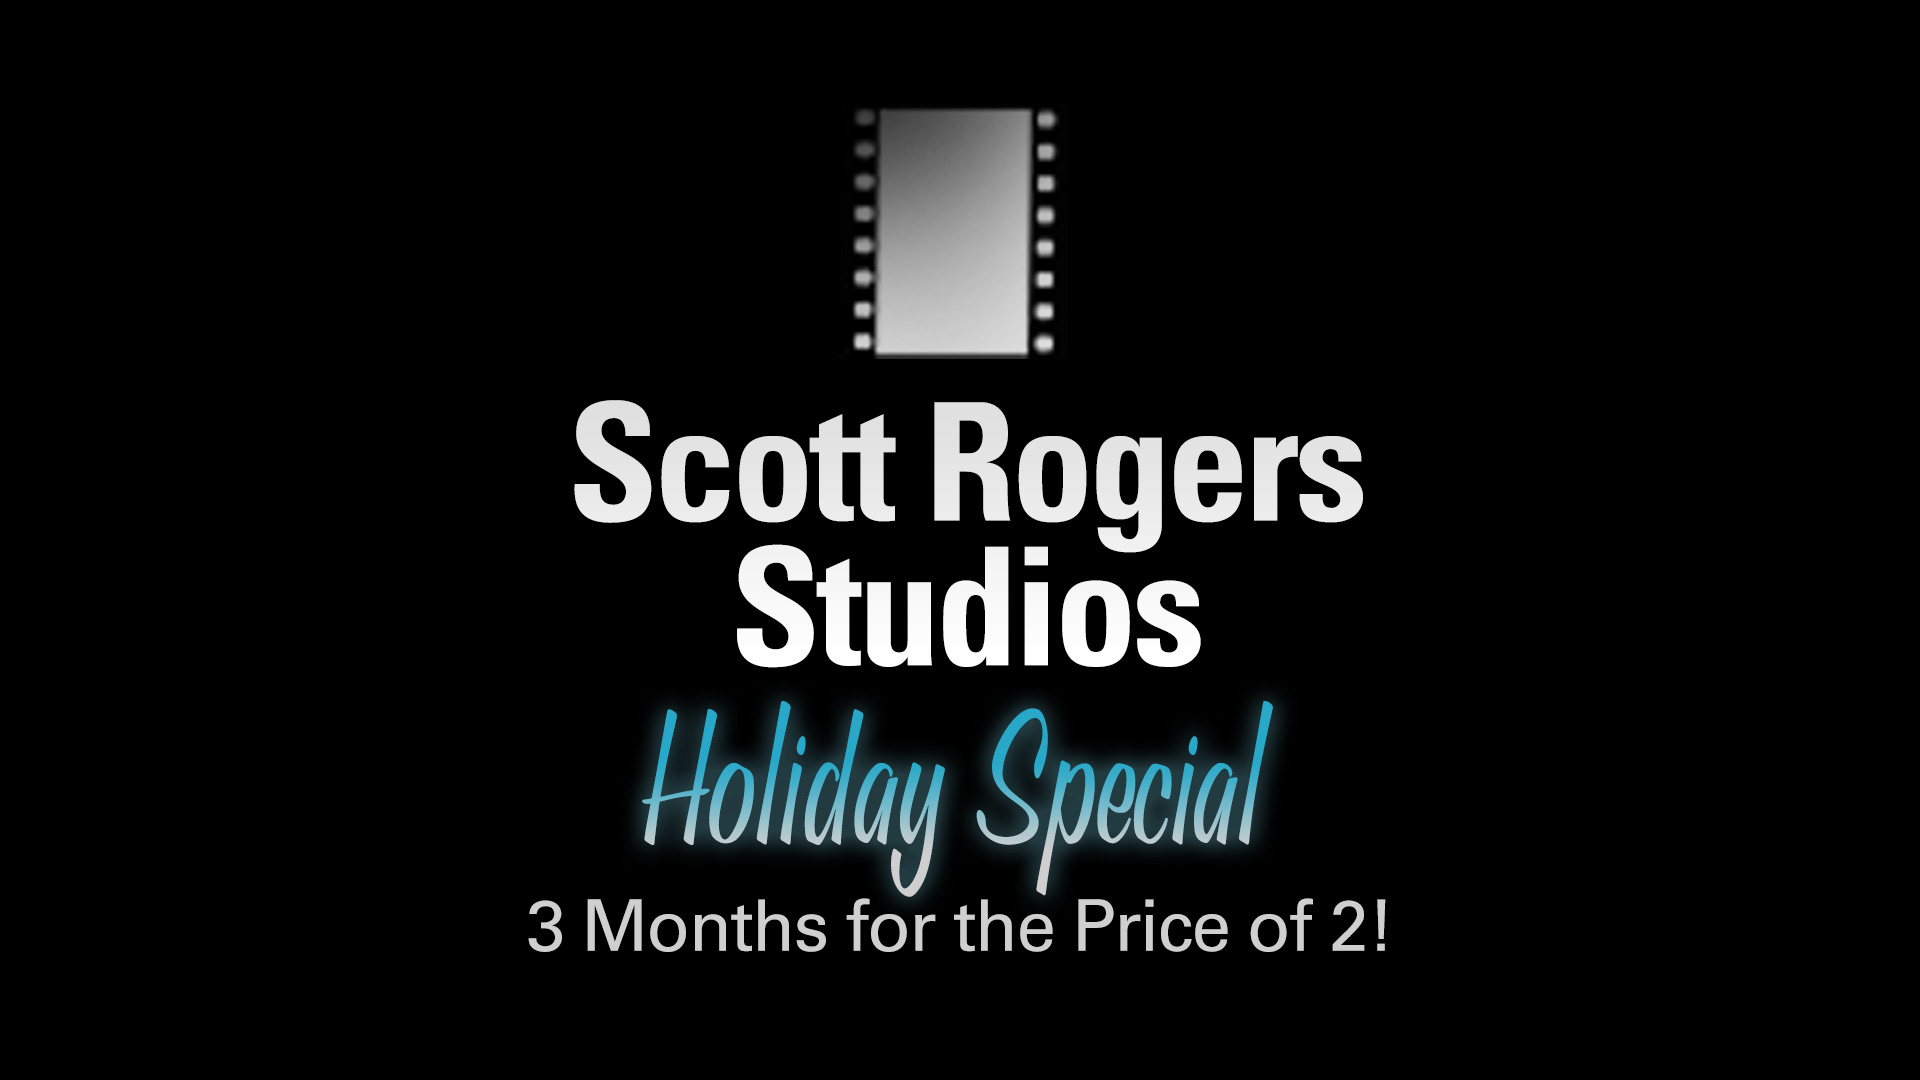 Scott Rogers Studios Holiday Special